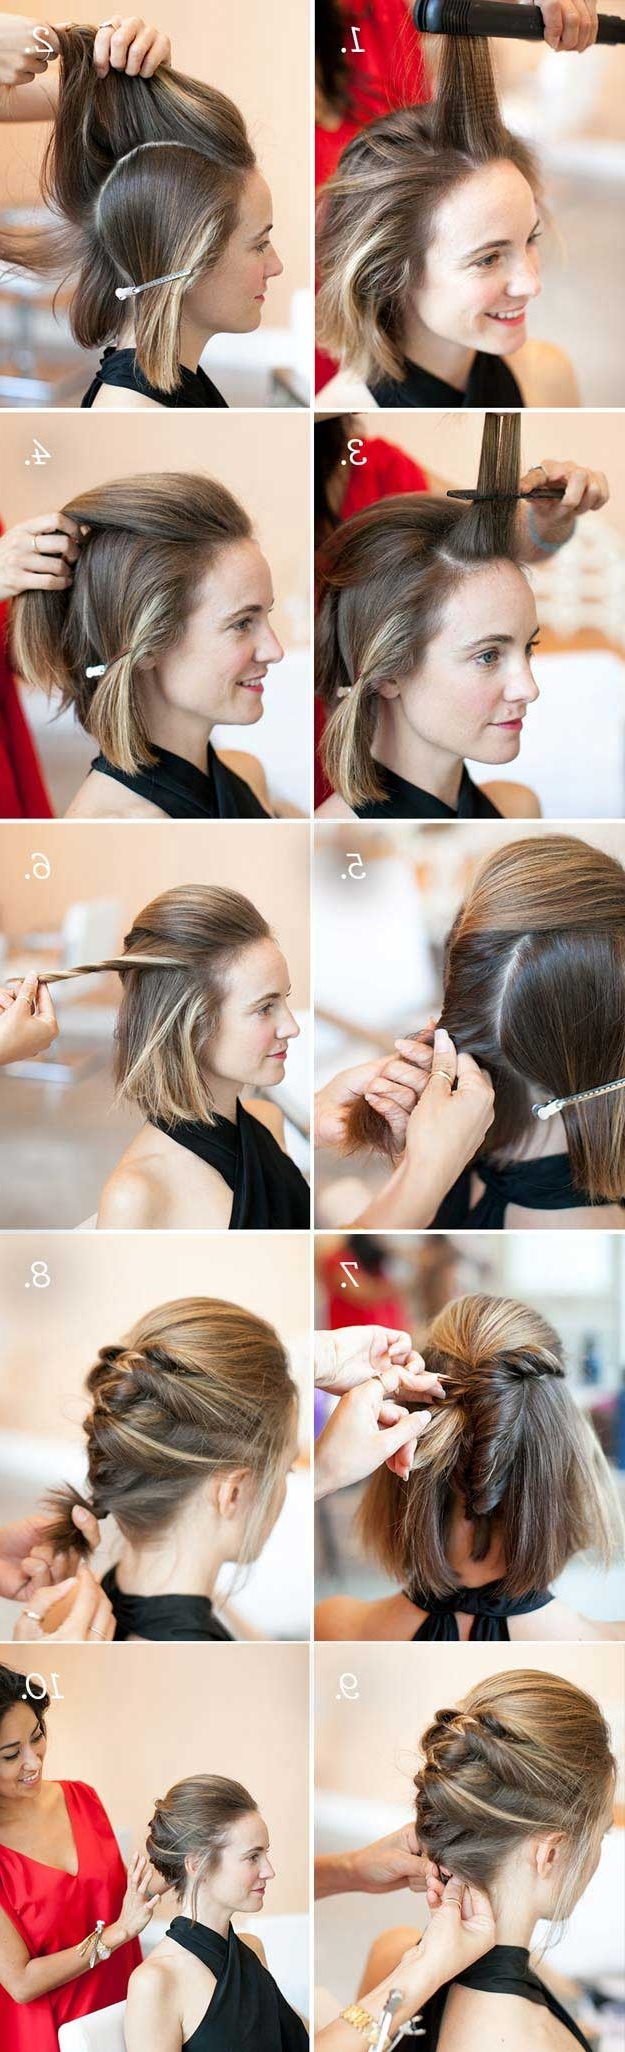 41 Best Hairstyles For Summer The Goddess 20+ Awesome Cute Summer Hairstyles For Medium Hair